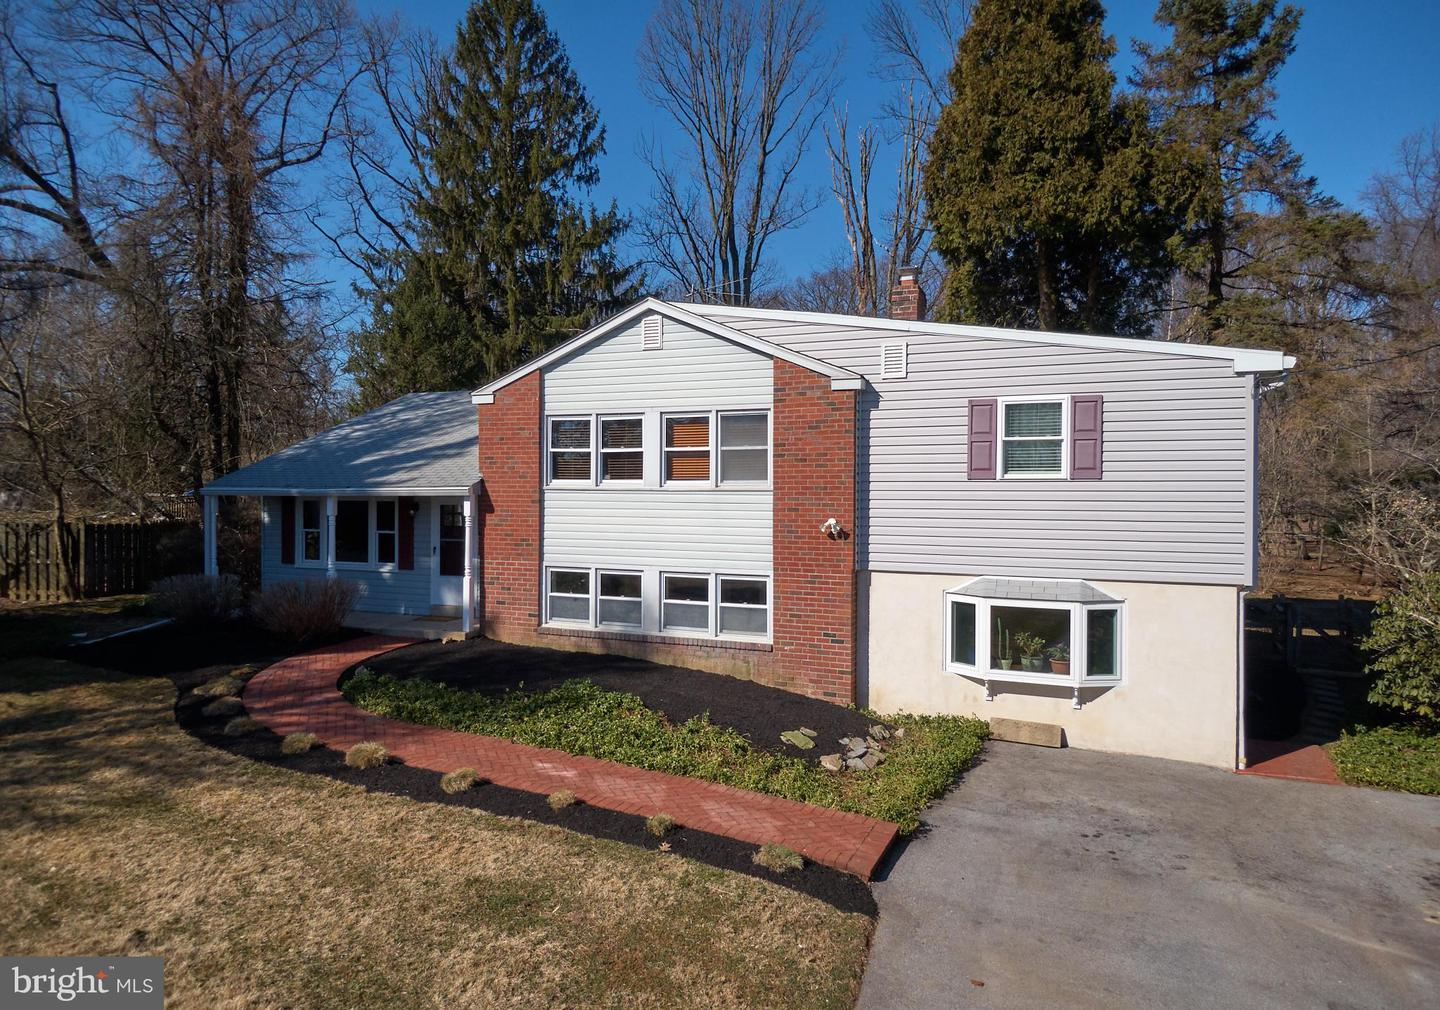 613 Howard Road West Chester, PA 19380